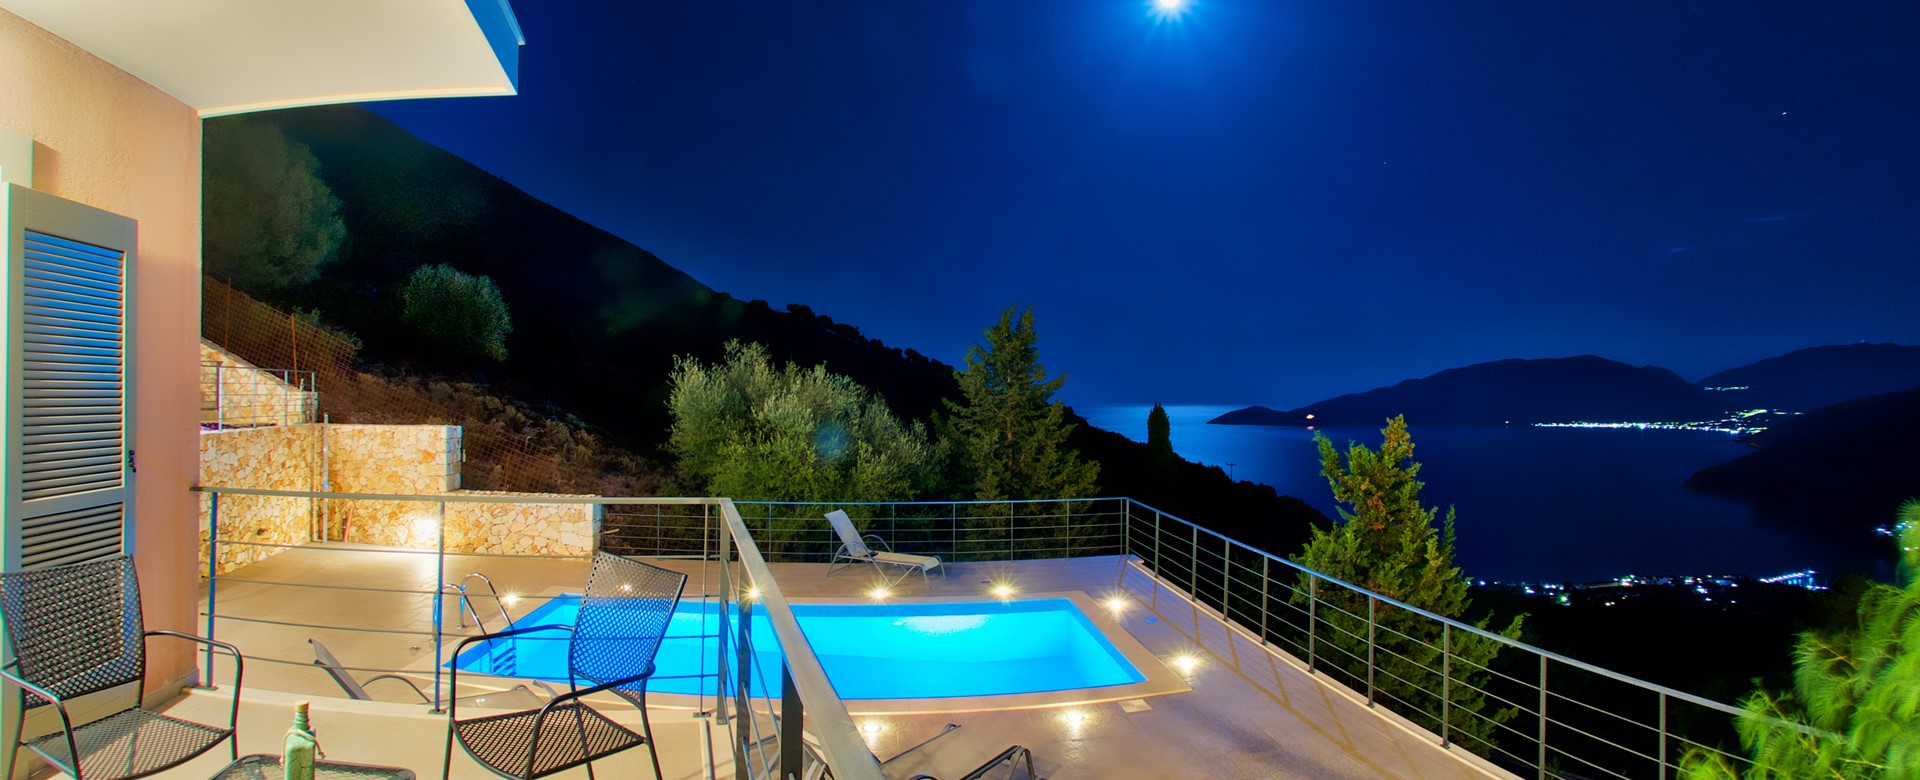 The moonlit view is just as spectacular from Villa Amore, Agia Efimia, Kefalonia, Greek Islands